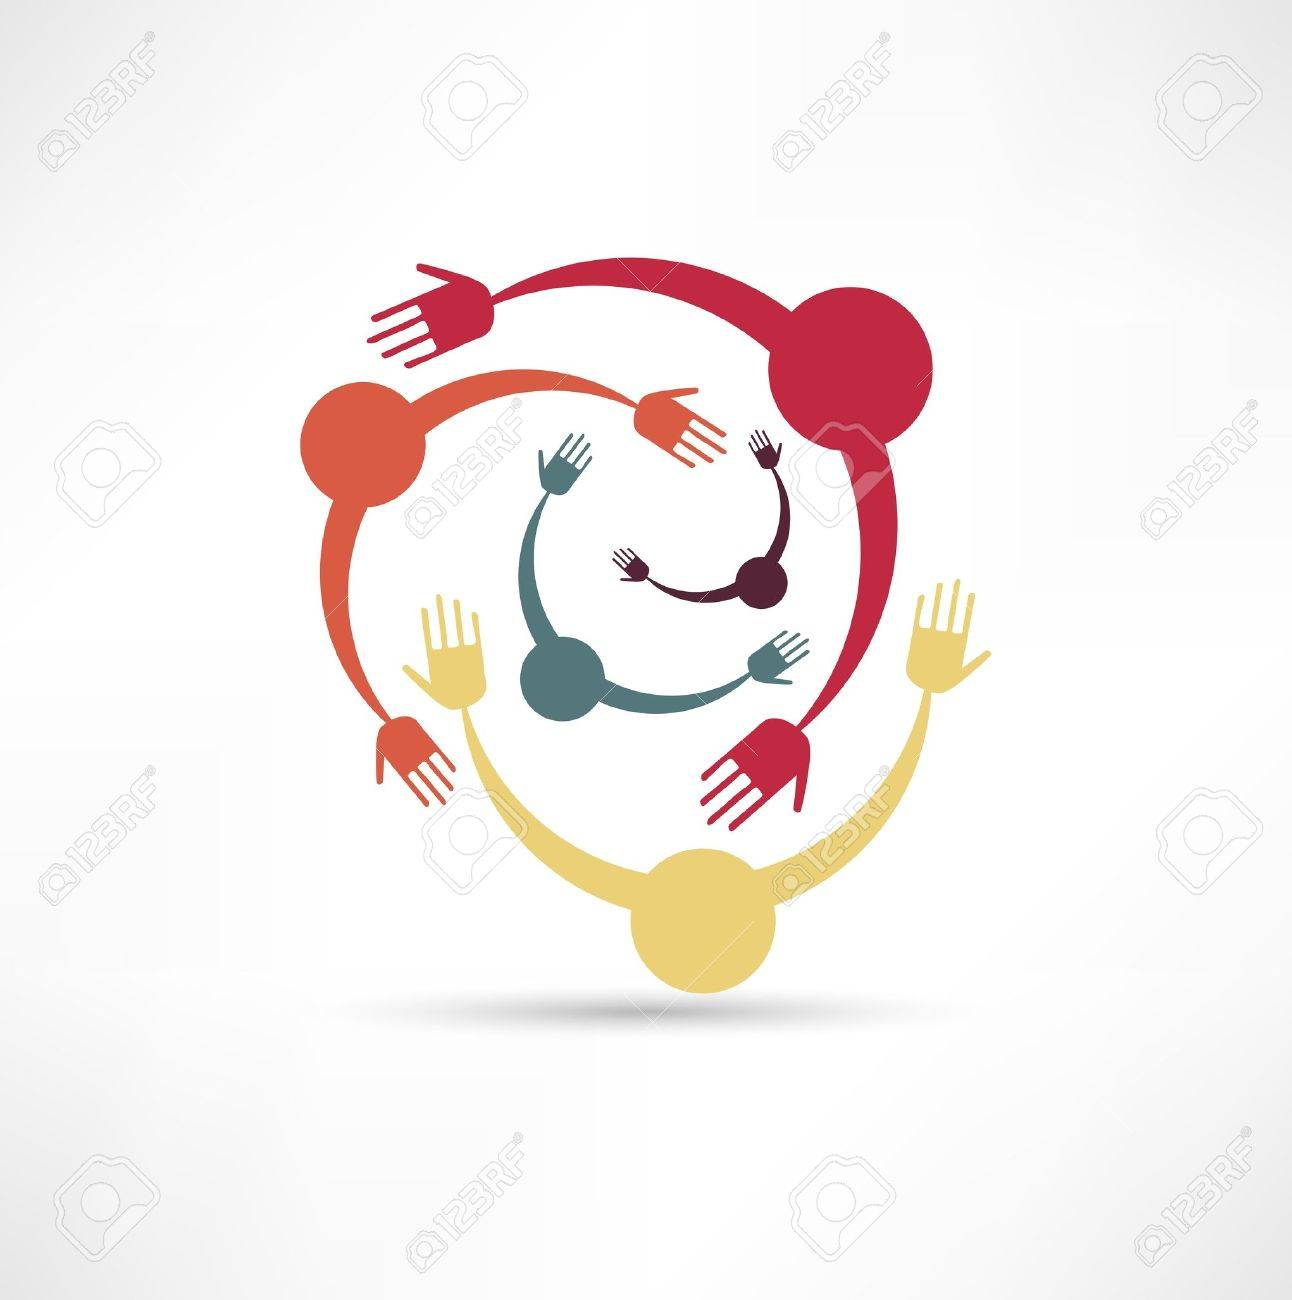 People Connected Symbol Stock Vector - 15567802